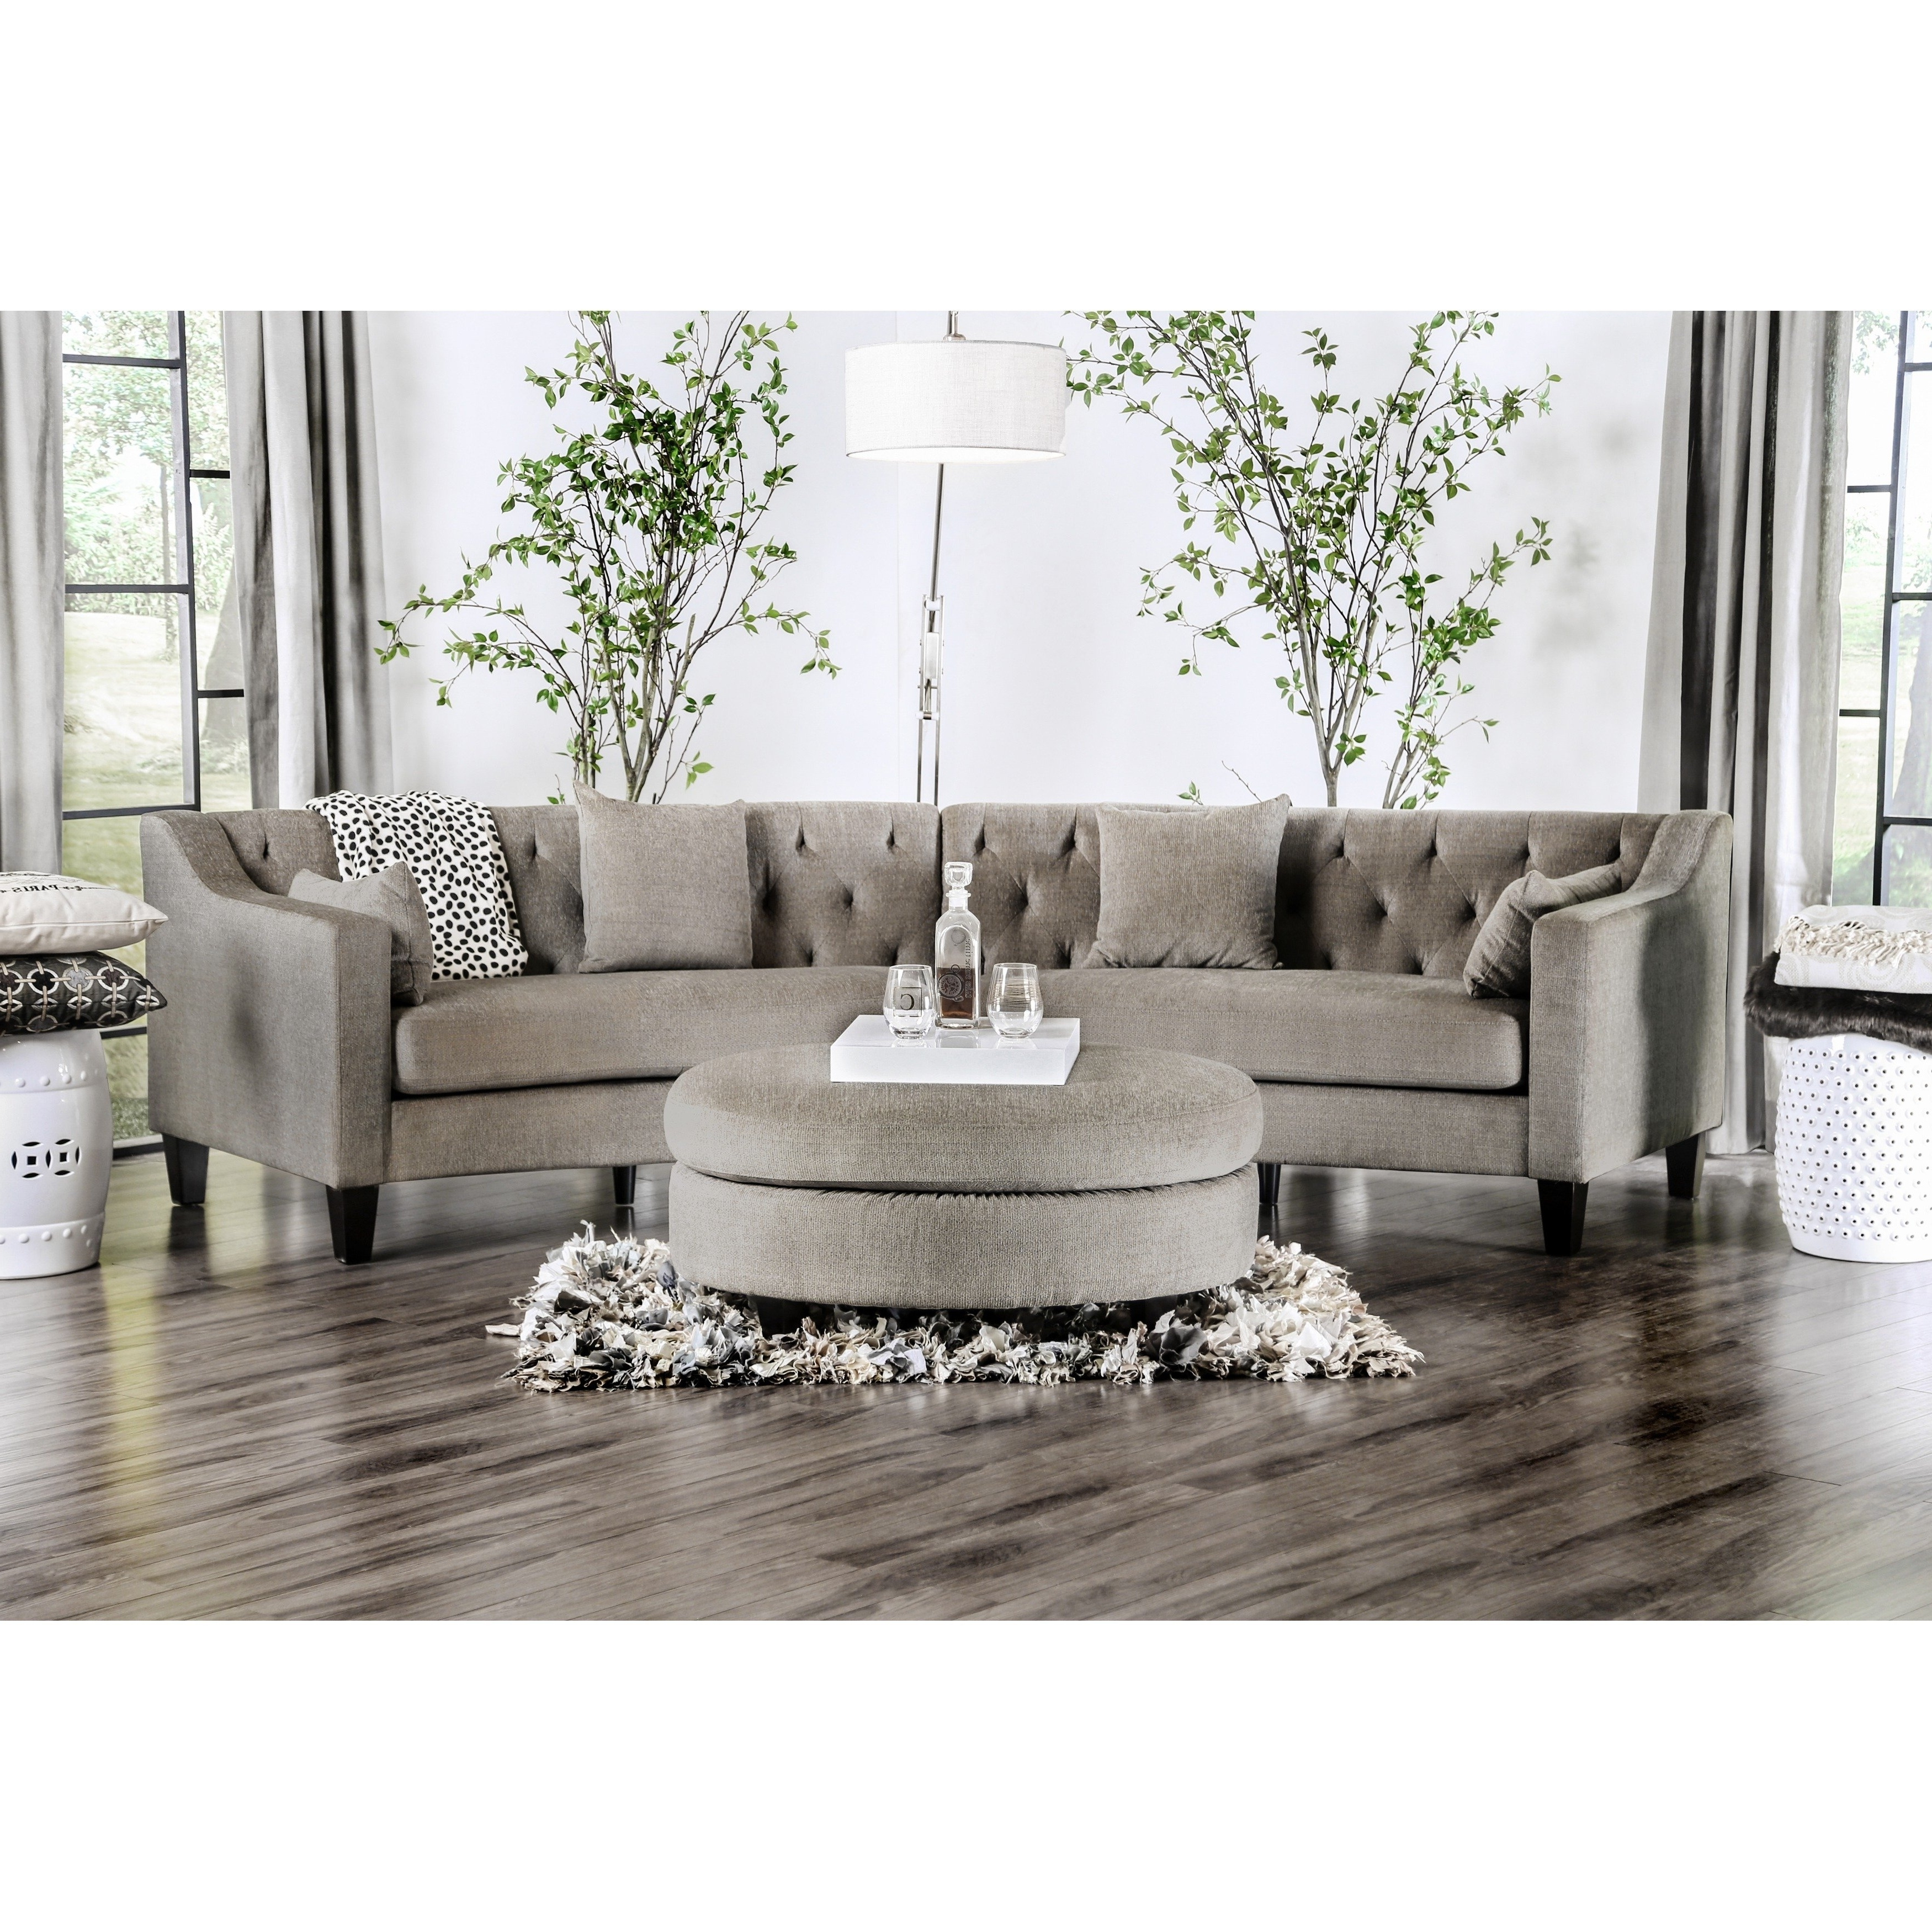 Shop Aretha Contemporary Grey Tufted Rounded Sectional Sofa For Most Popular Contemporary Curves Coffee Tables (View 20 of 20)